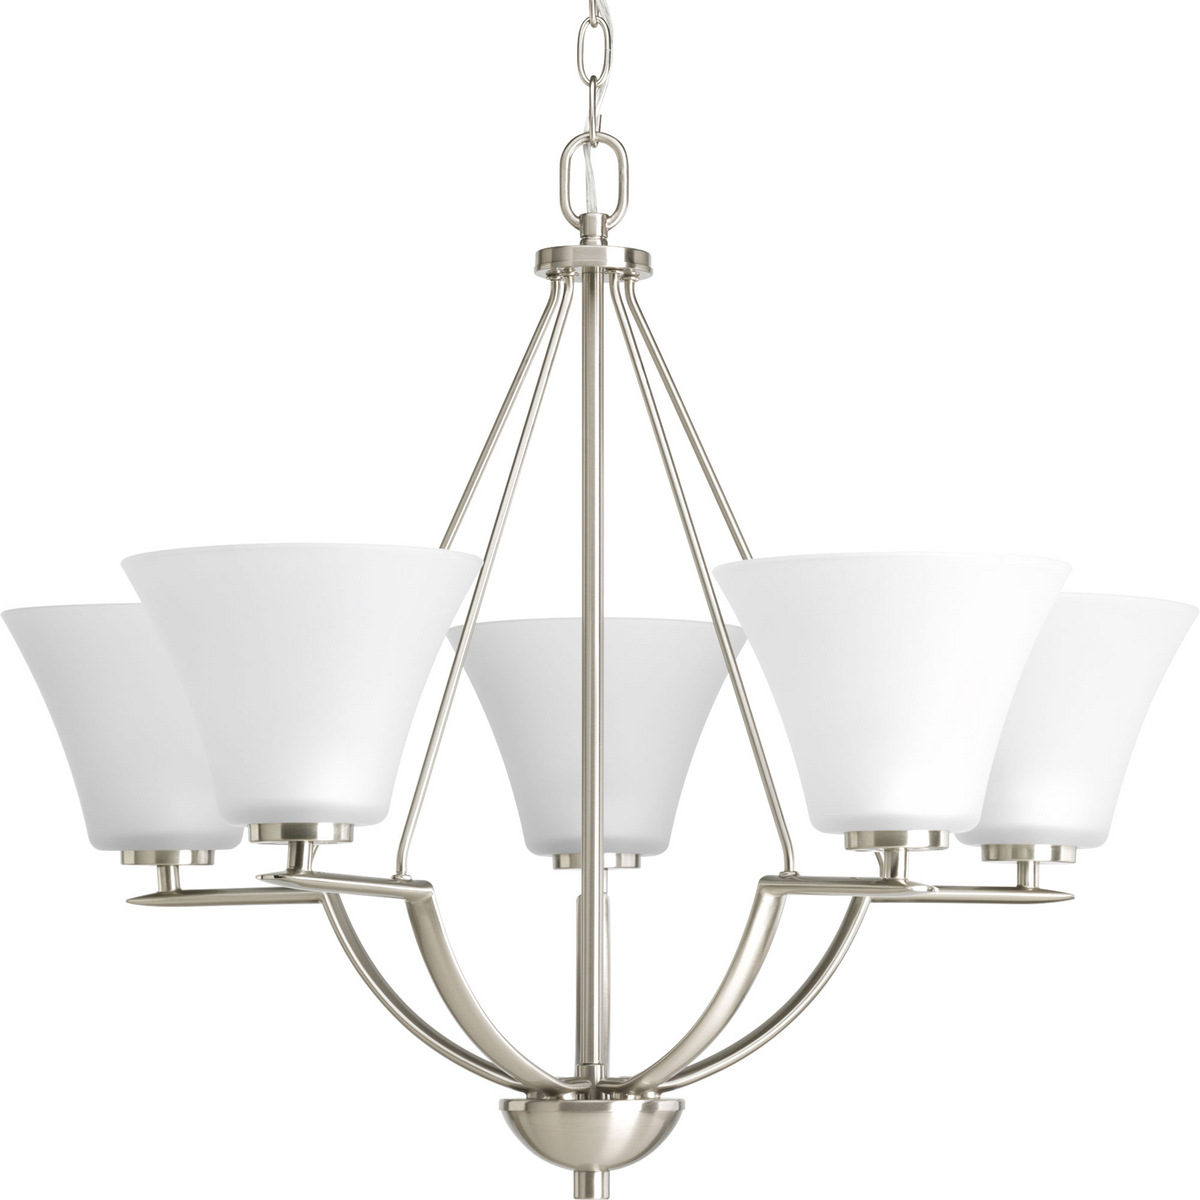 PRO P4623-09 5X100M Brushed Nickel Bravo Chandelier